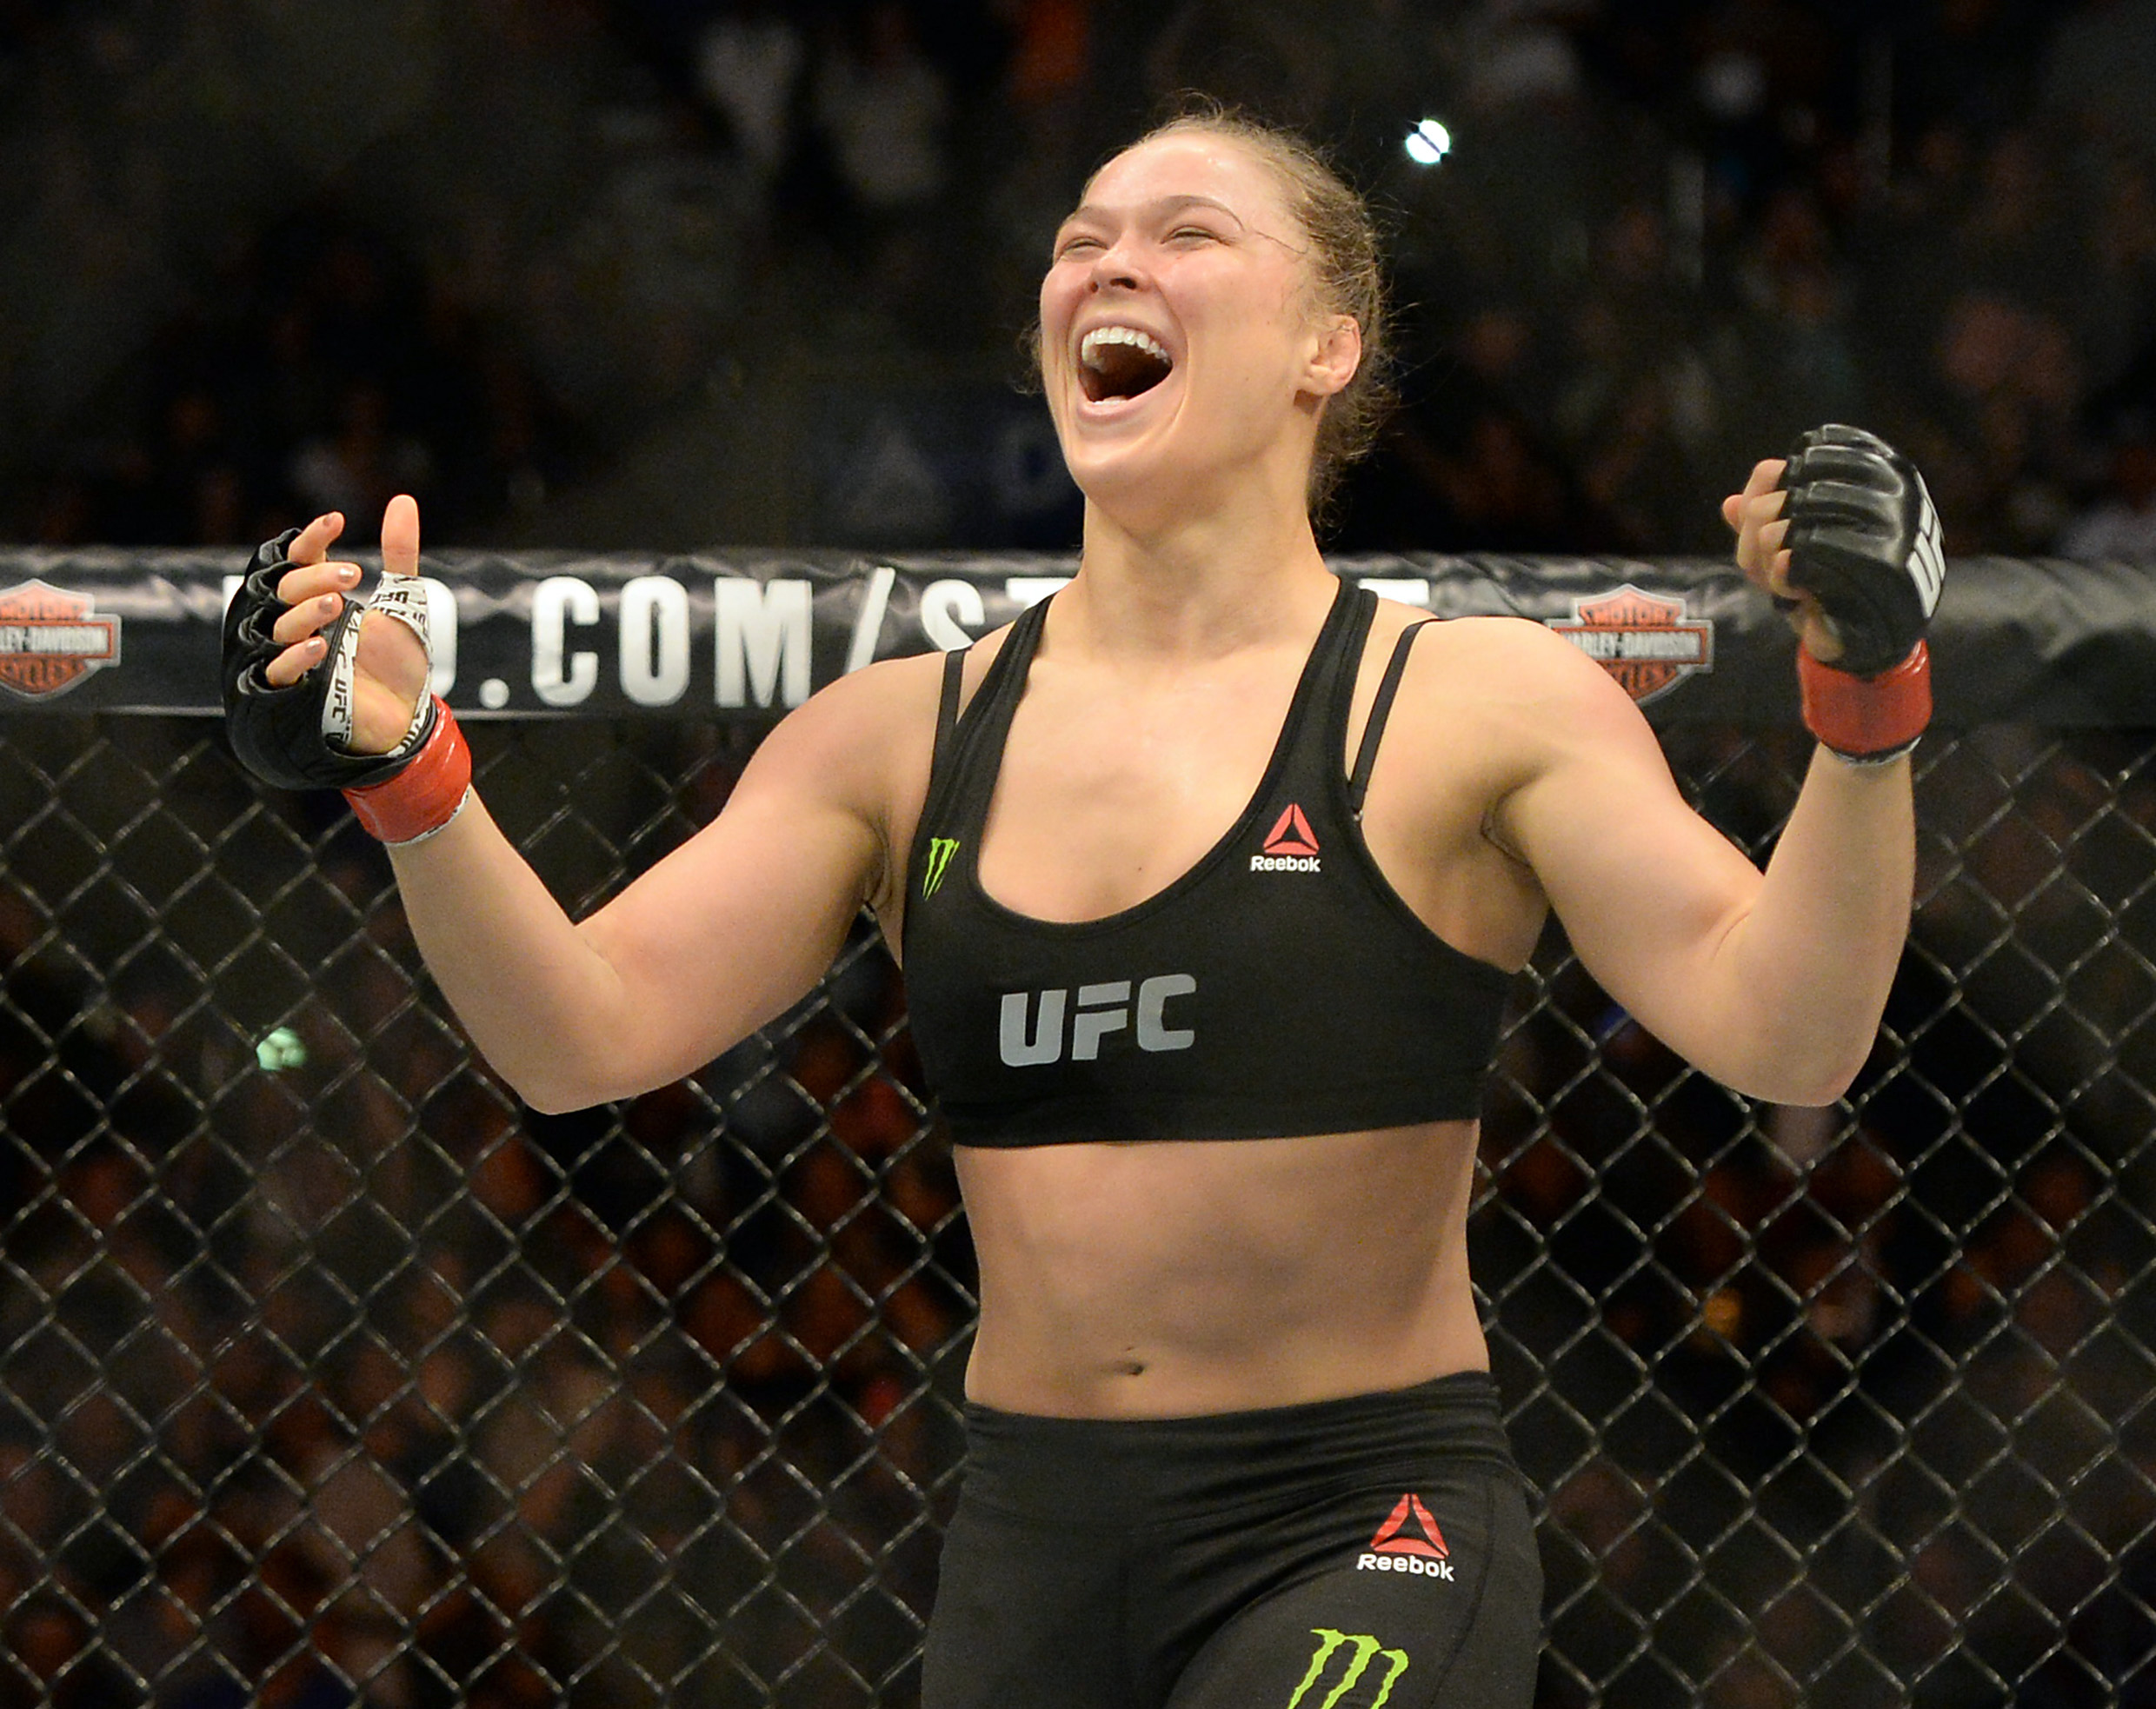 The Ronda Rousey Debate That Needs to go Away (Commentary)